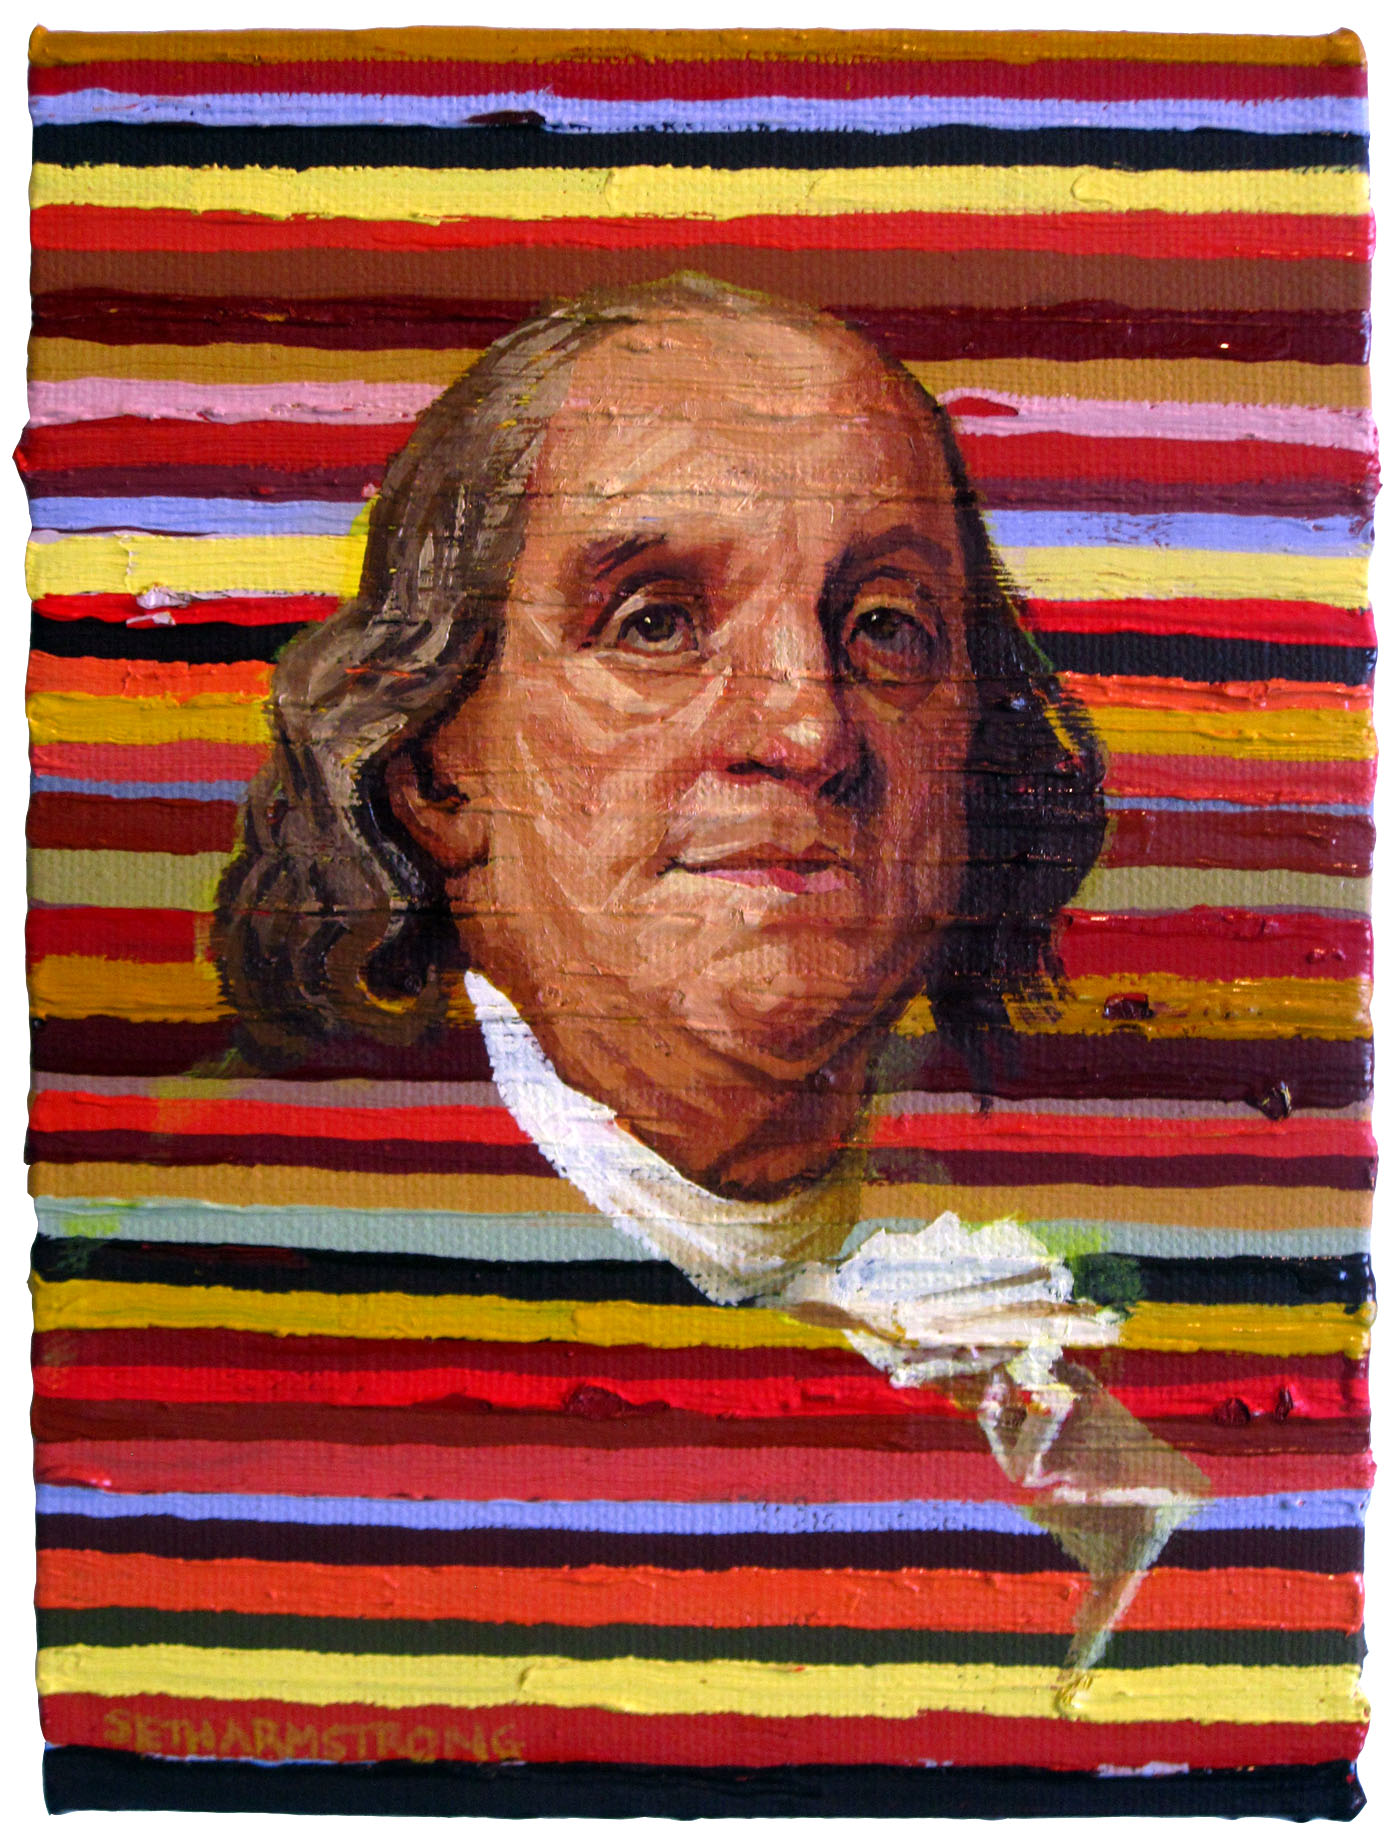 Mr. Ben Franklin